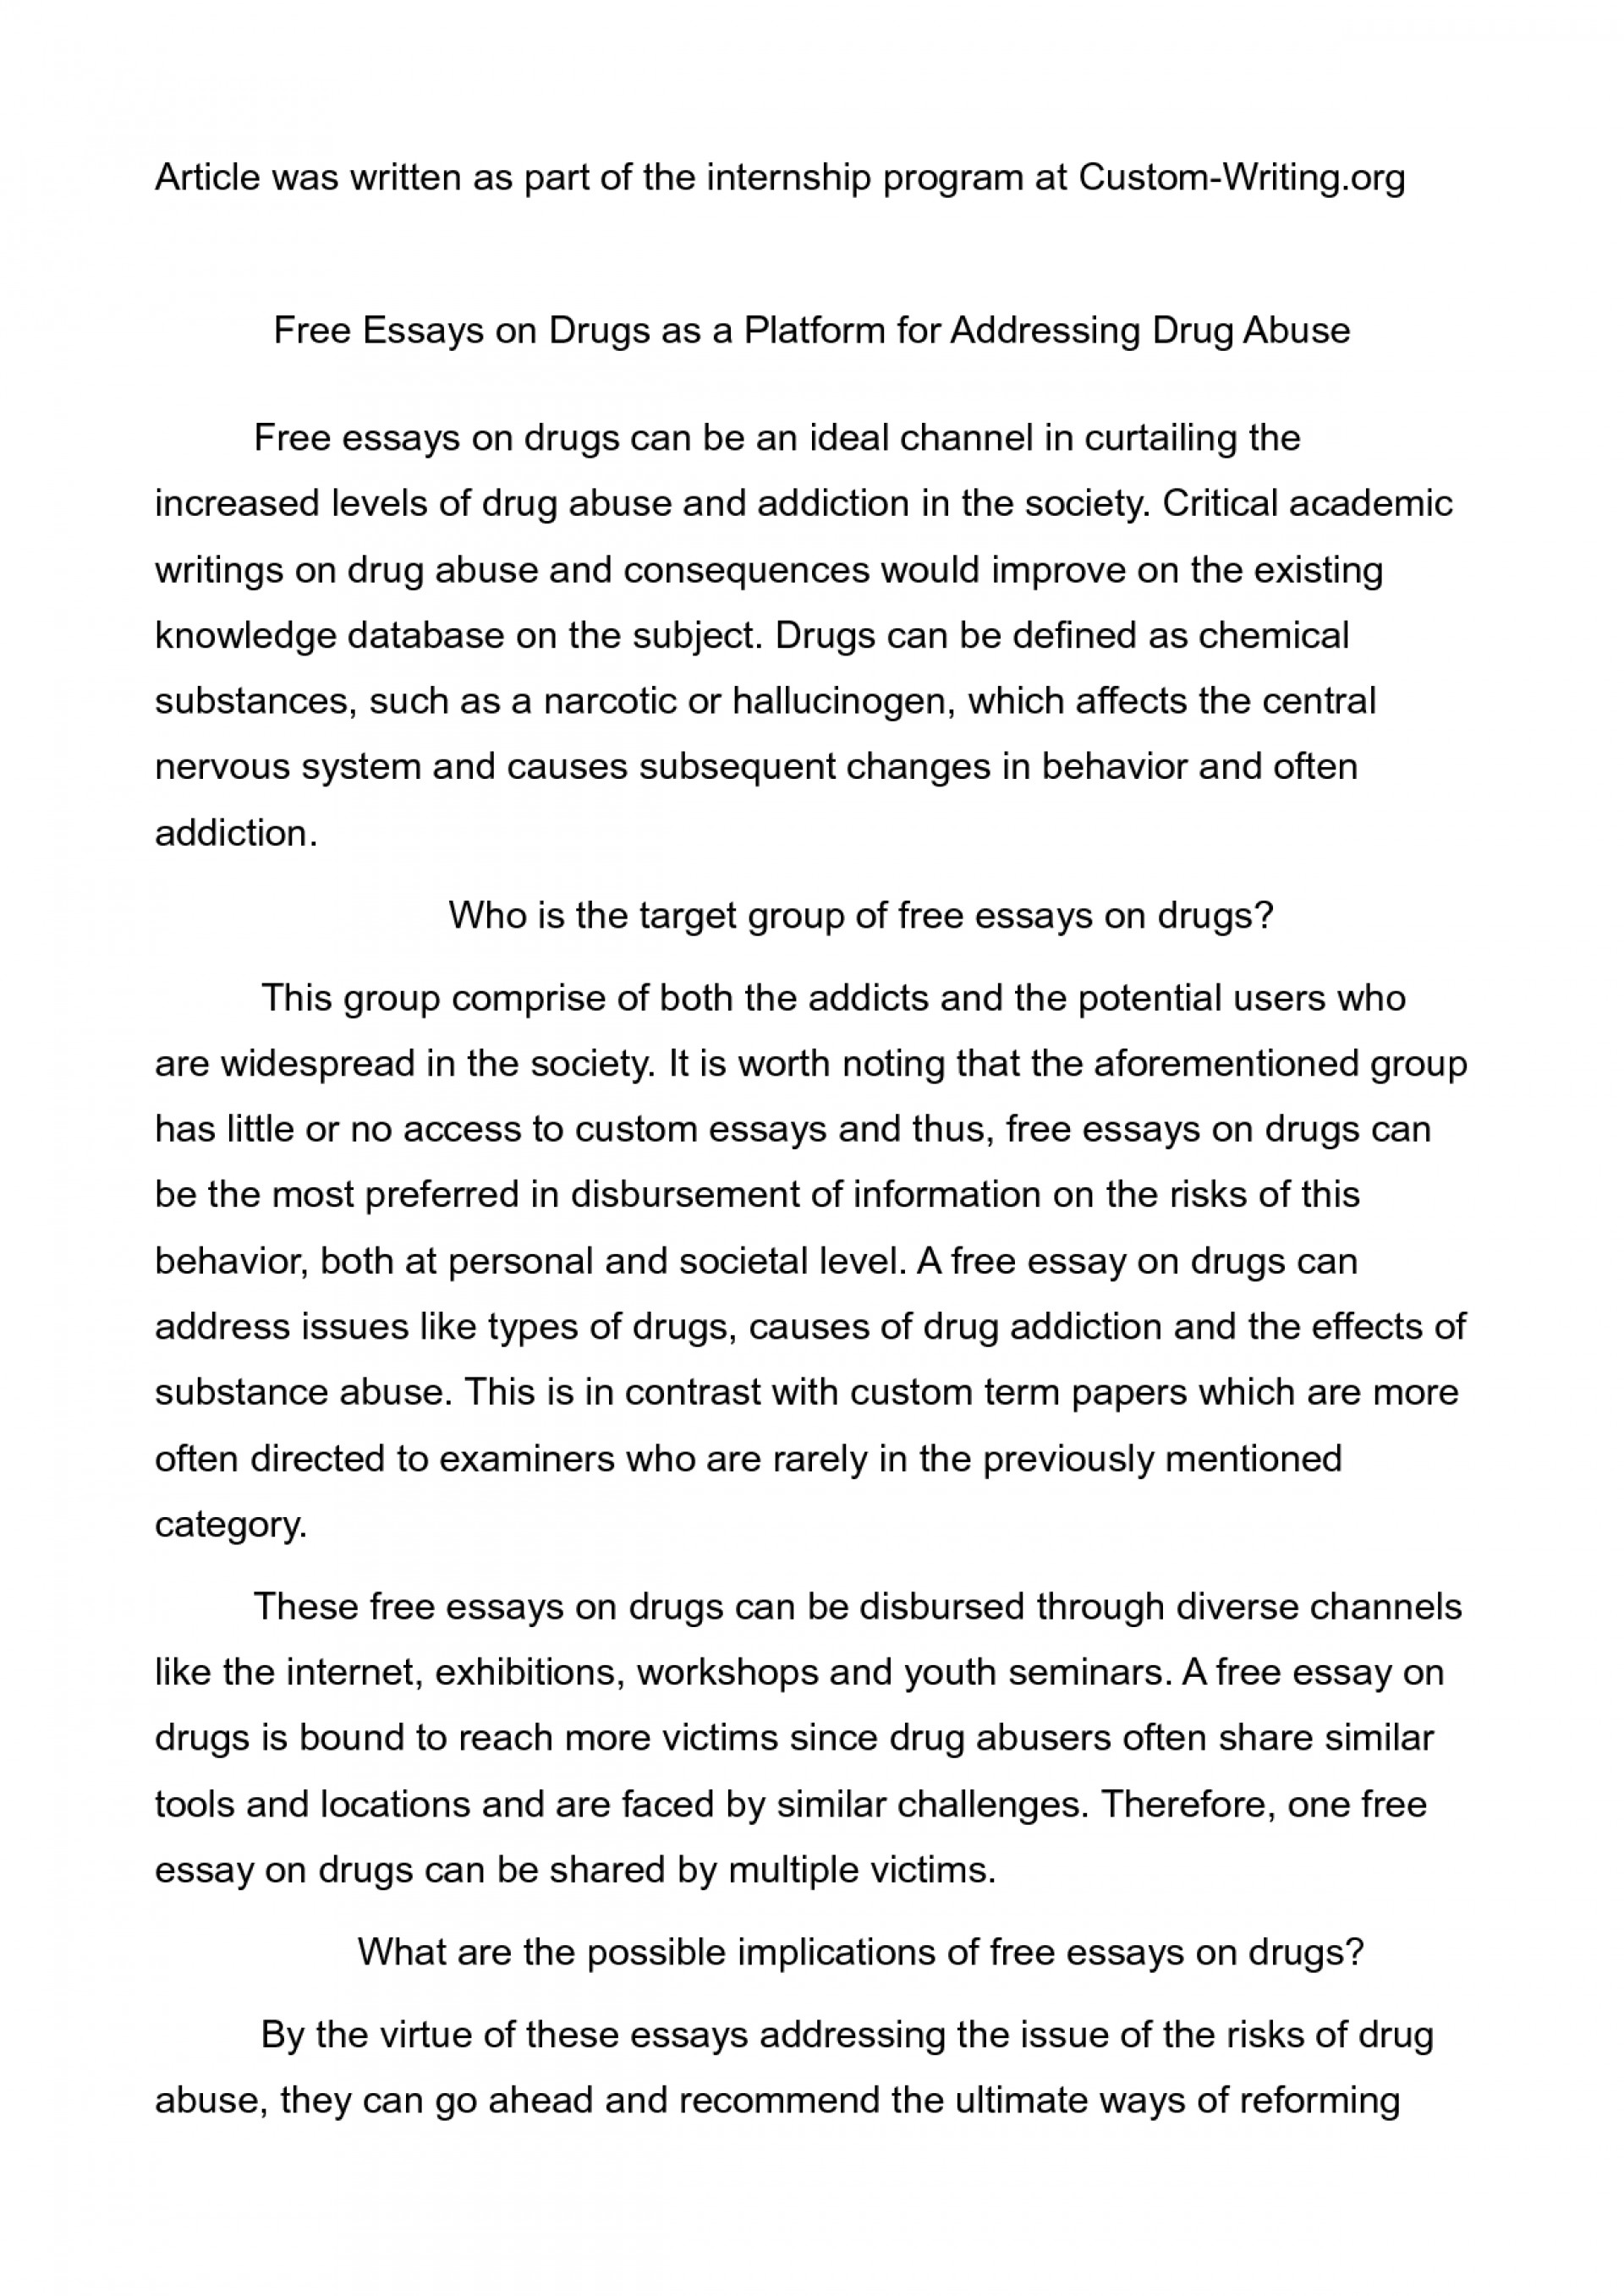 009 Argumentative Essay About Drugs Amazing Template Sample 6th Grade Conclusion 1920